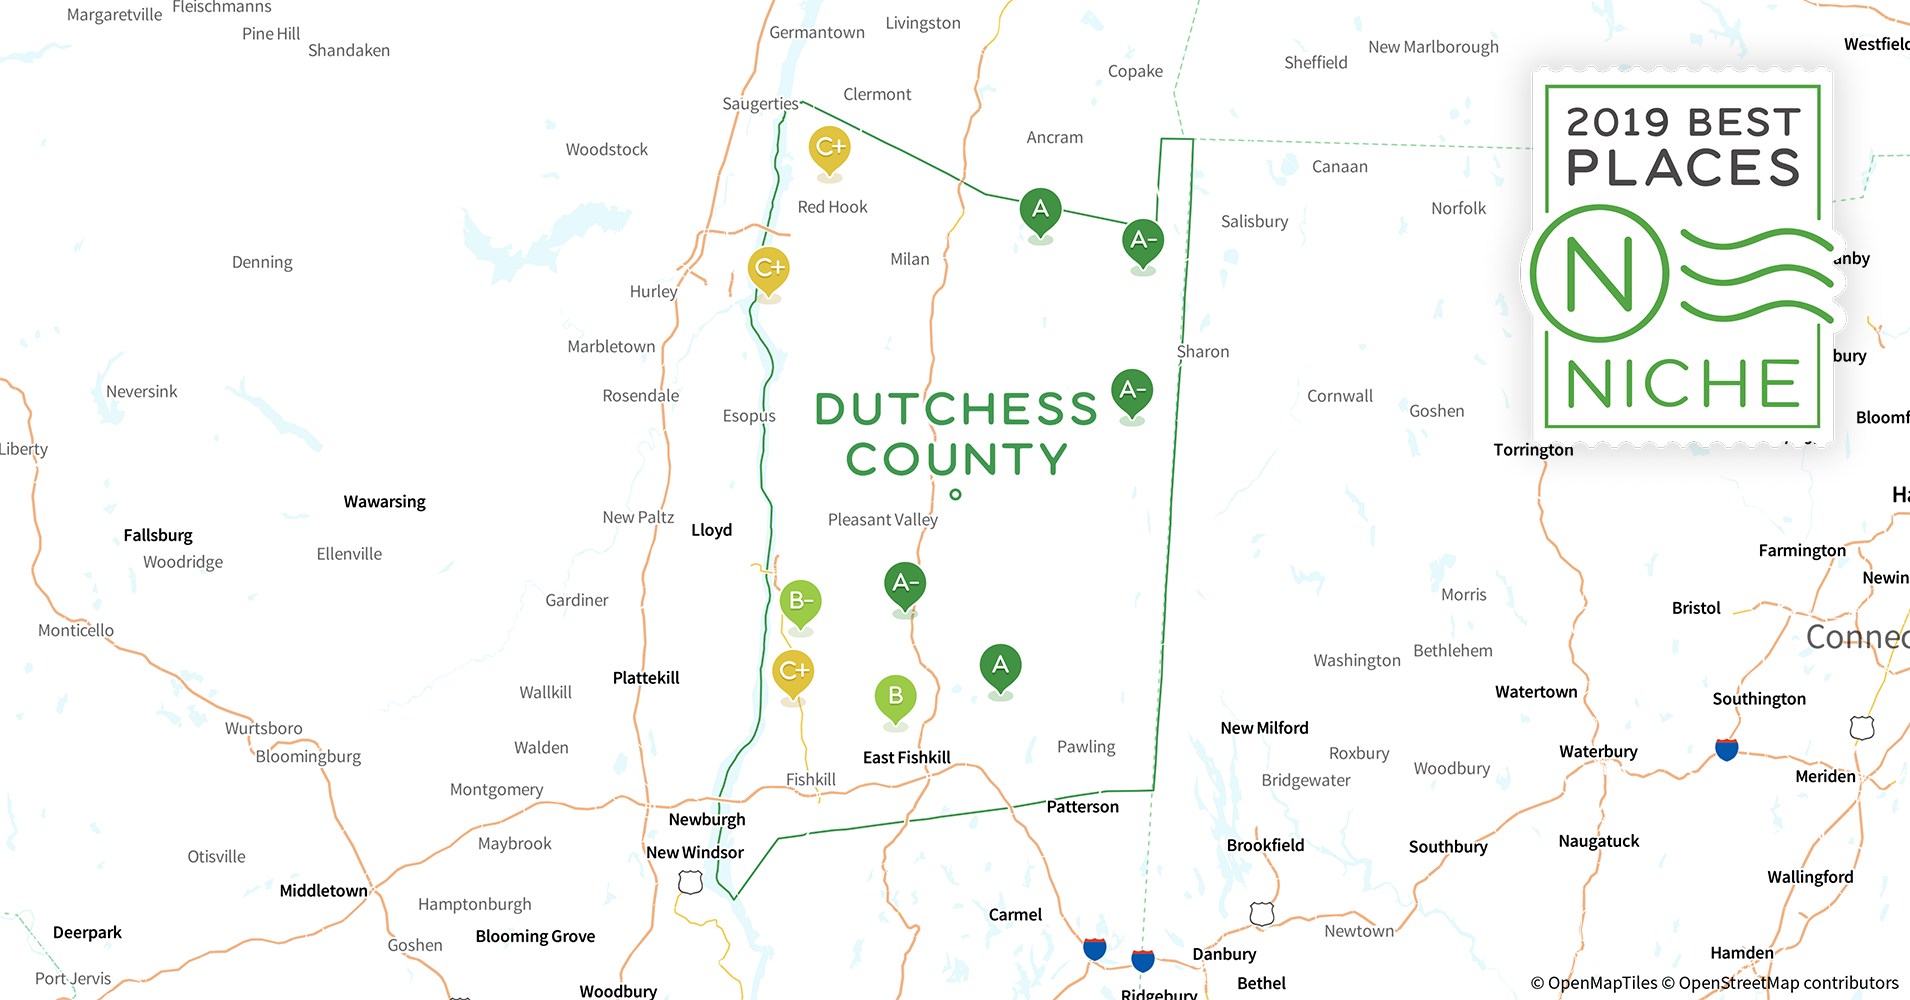 2019 Best Places to Live in Dutchess County, NY - Niche